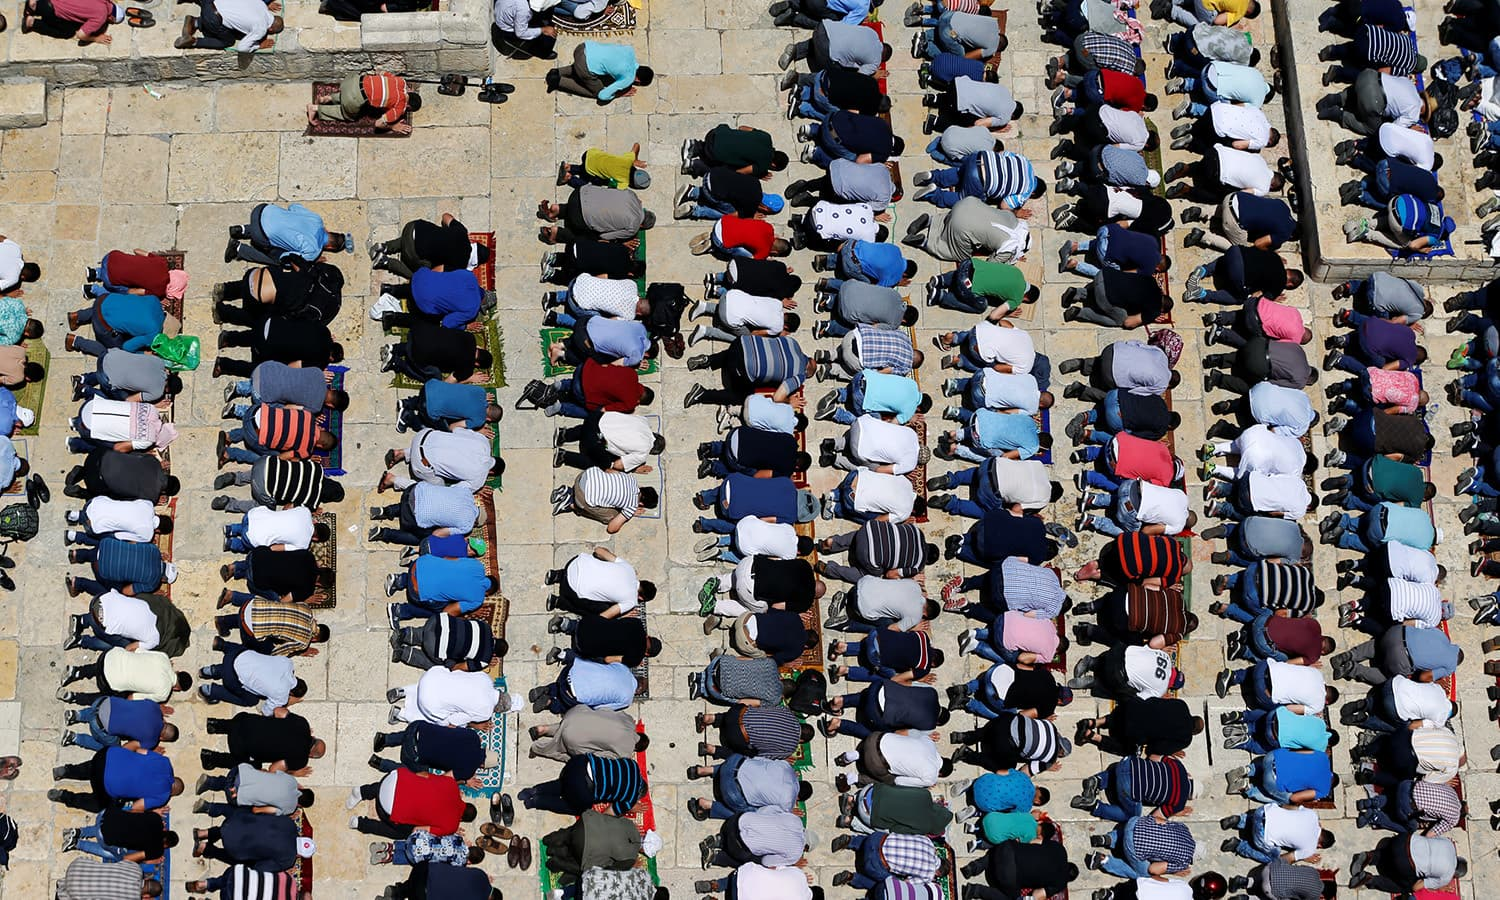 Muslims pray during the Friday prayers for Ramazan in Jerusalem's Old City June 9.— Reuters